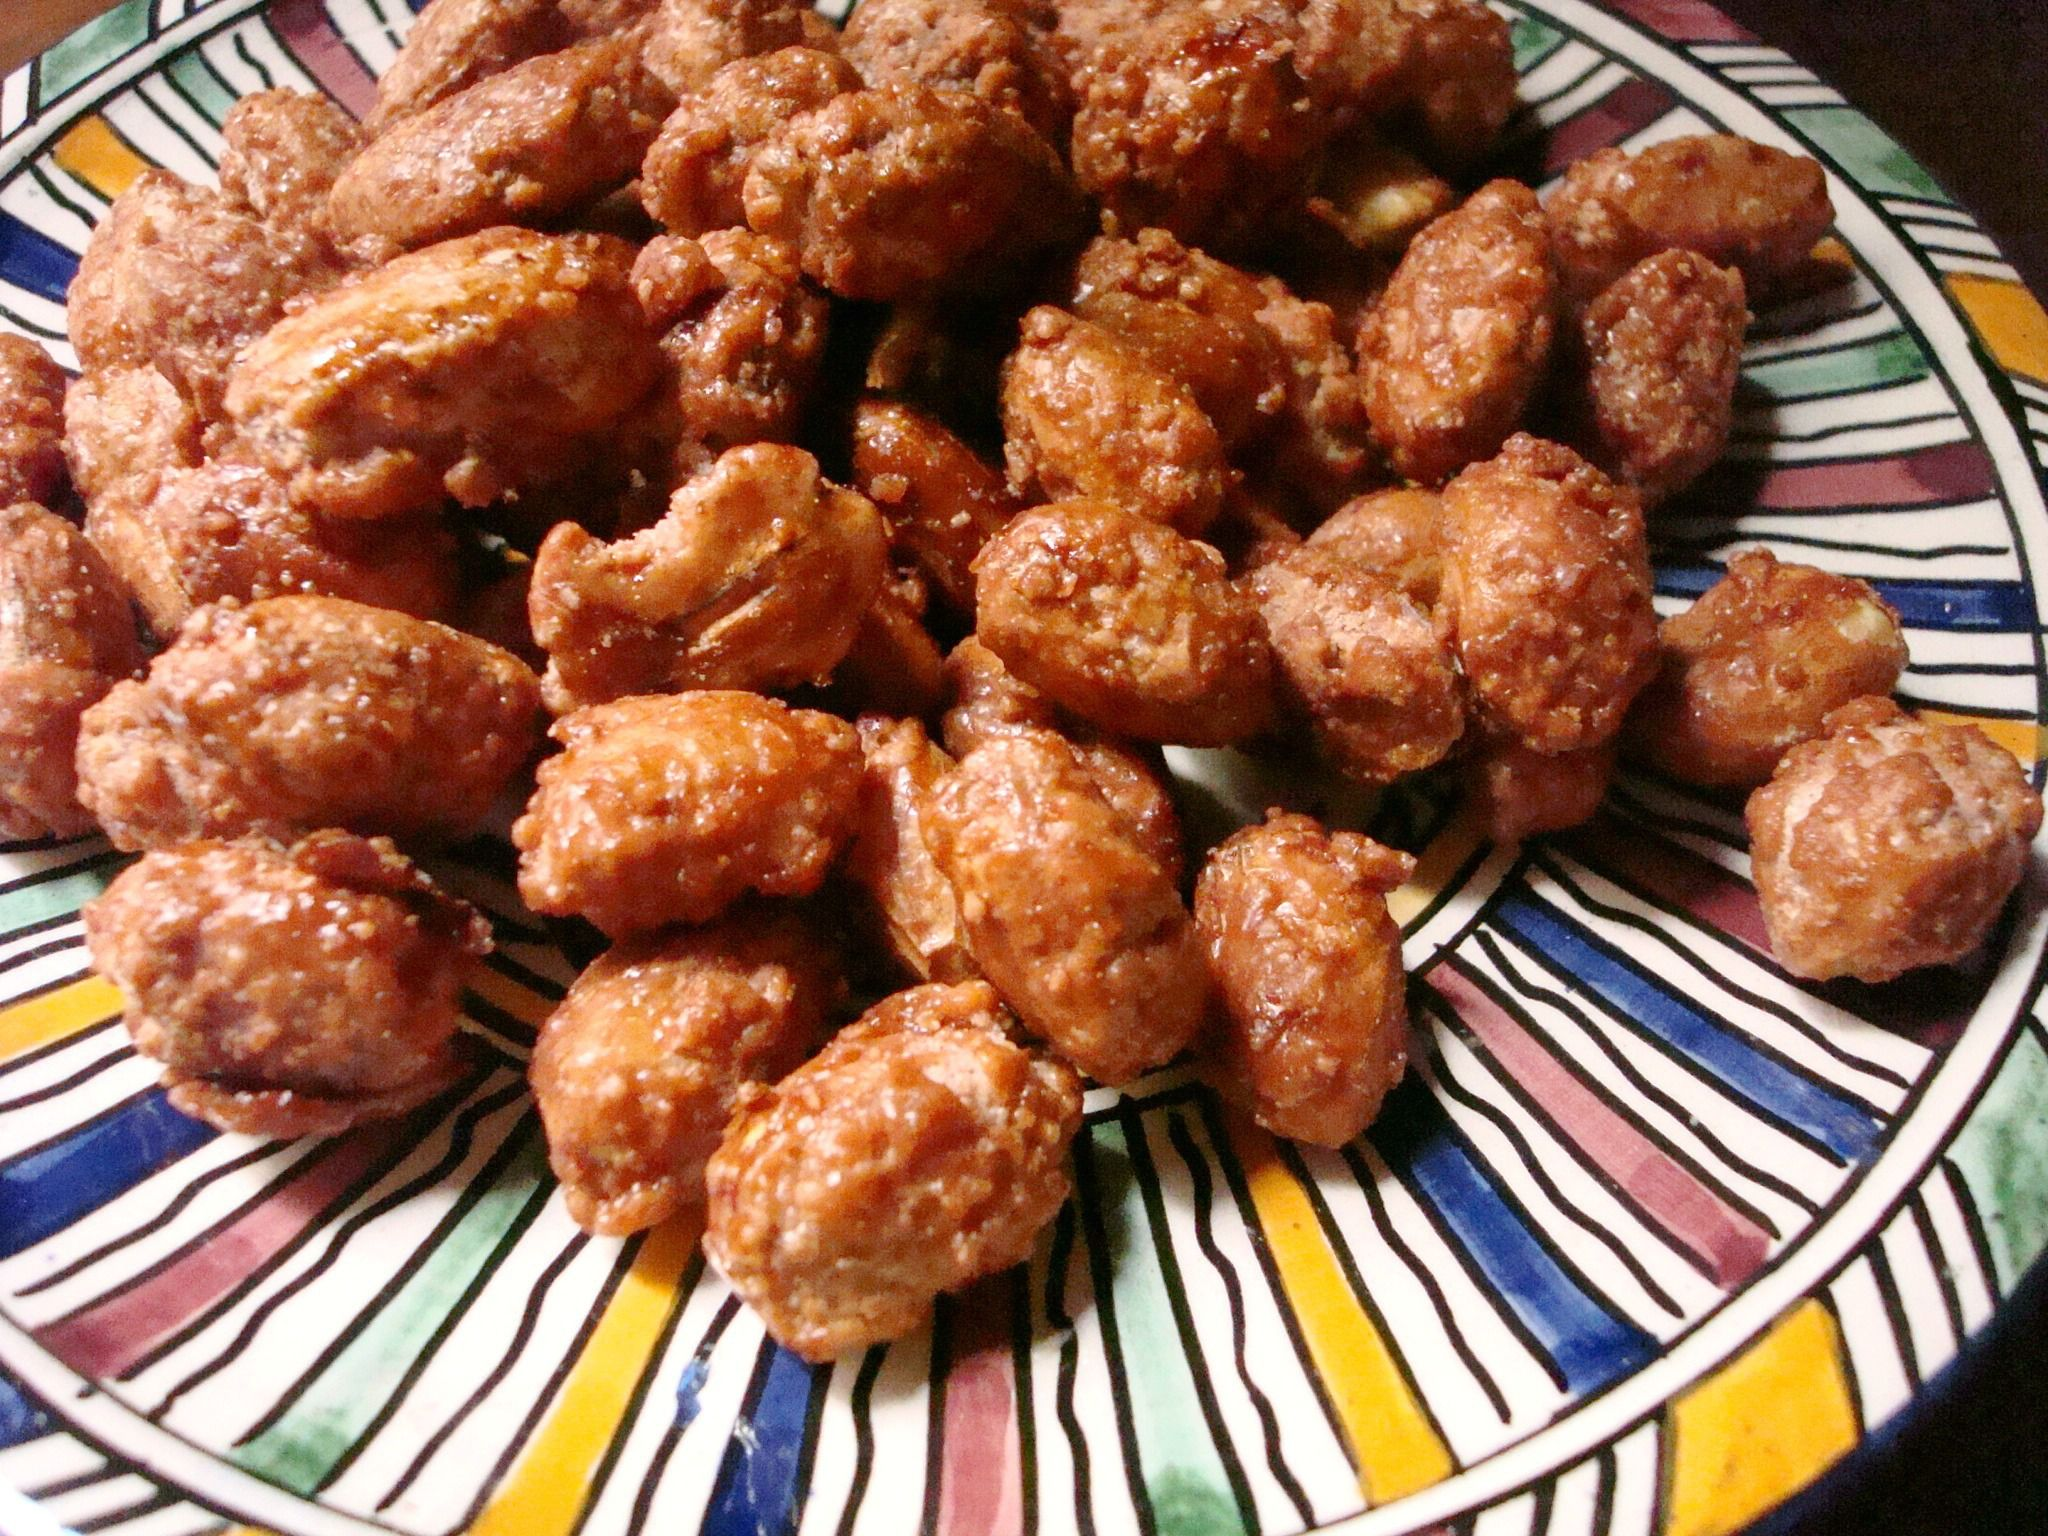 Make Sweet, Crunchy Caramelized Peanuts at Home